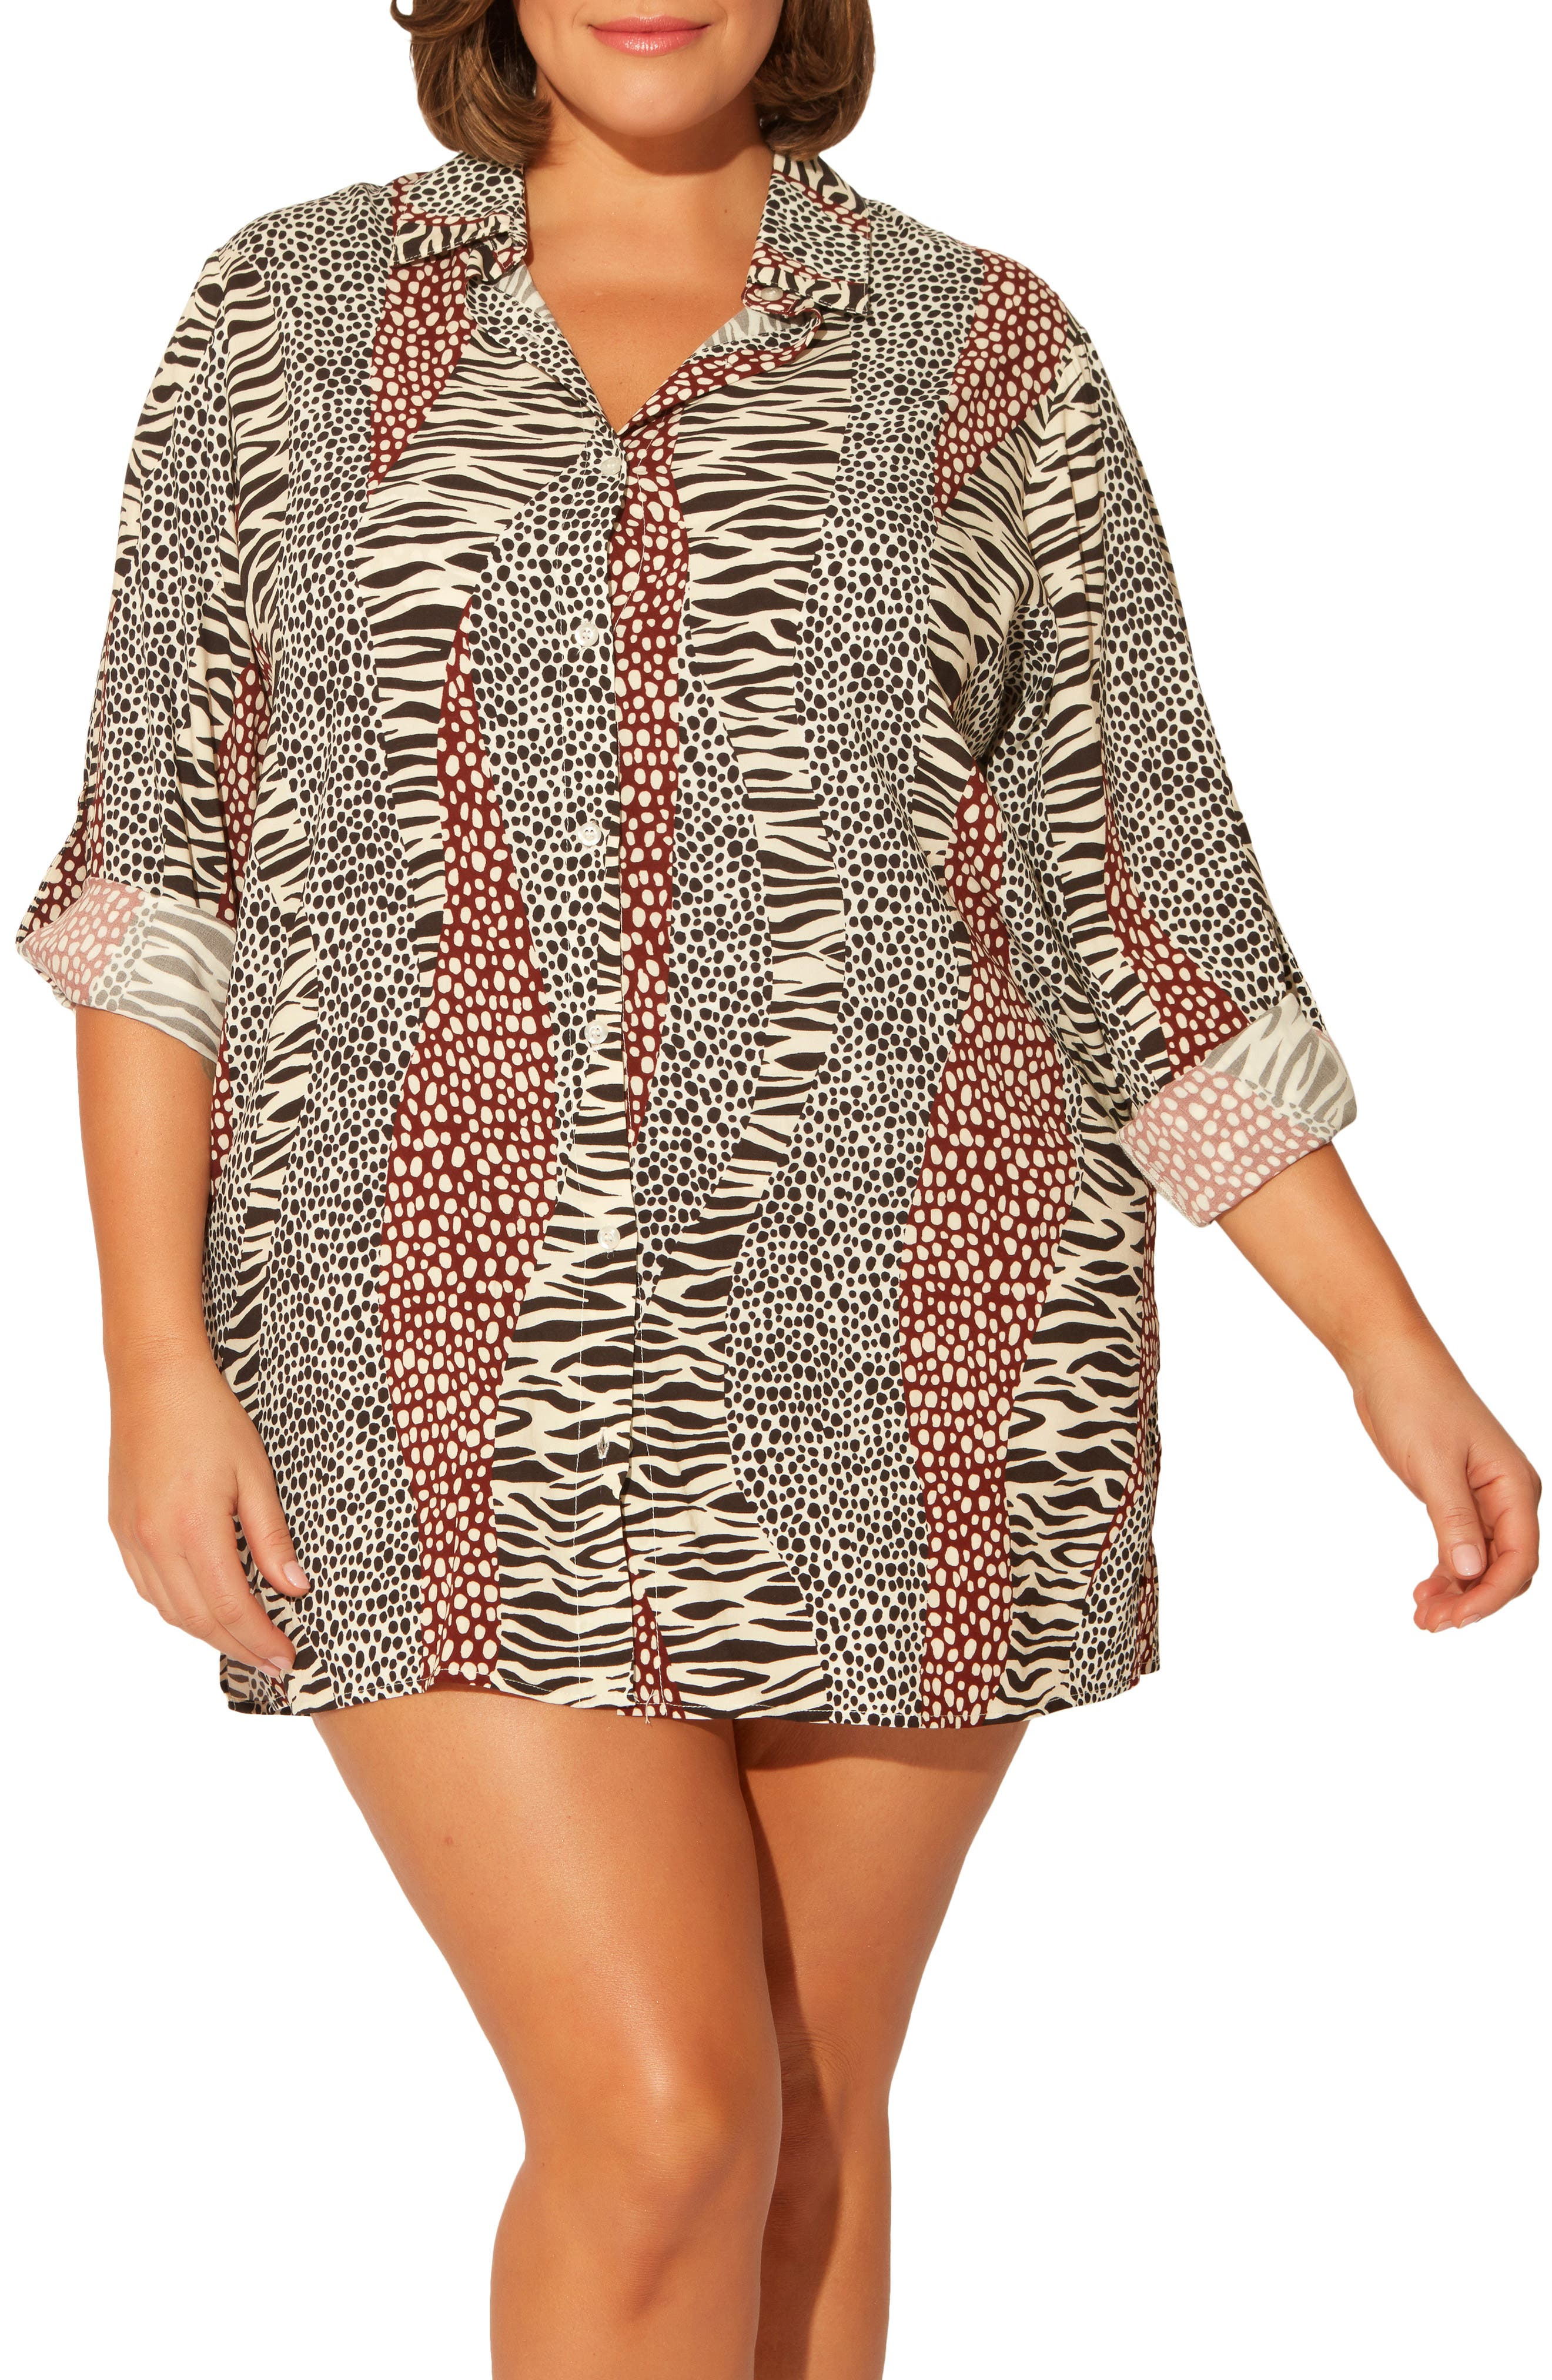 Some Like It Hot Cover-Up Shirt